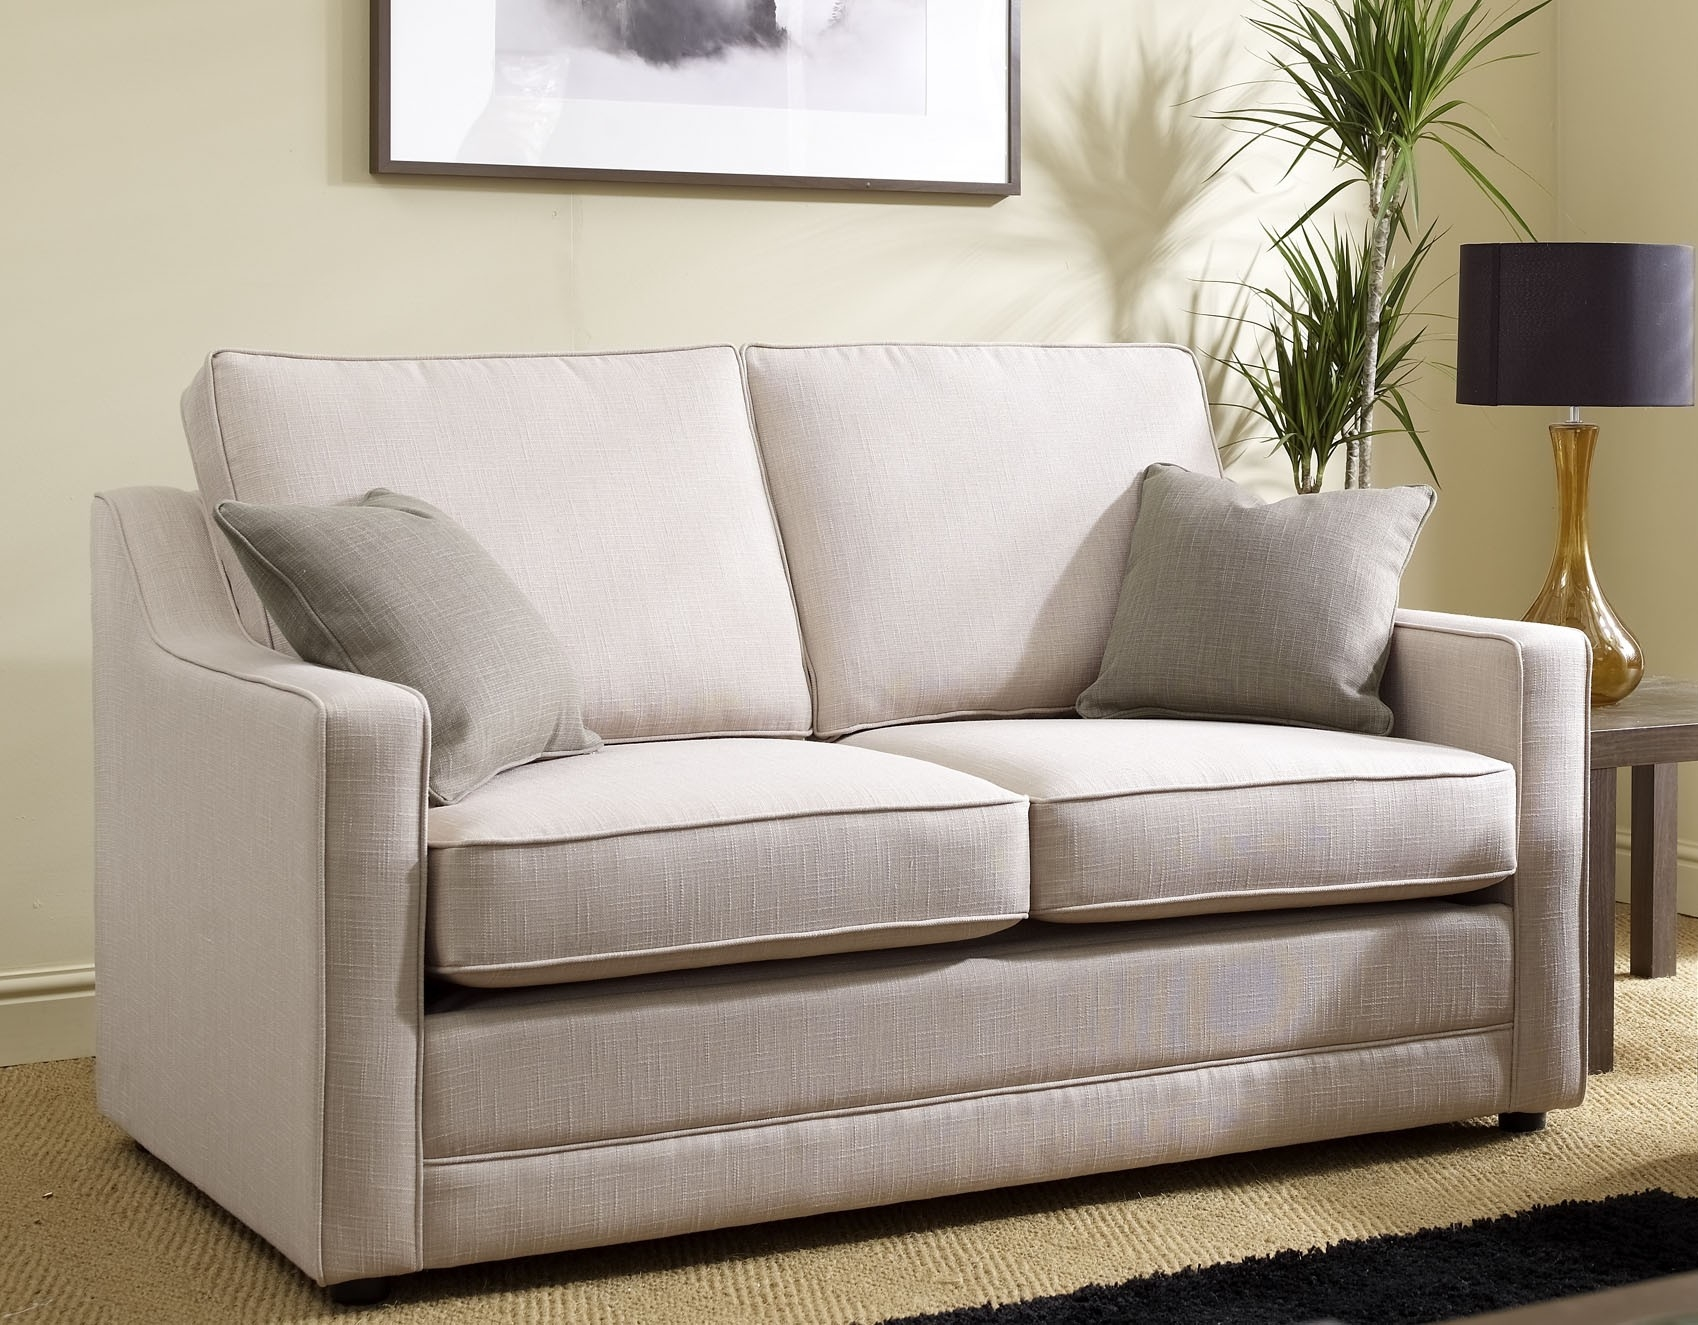 Small Bedroom Sofas Uk Hereo Sofa Pertaining To Small Sofas And Chairs (Image 8 of 15)